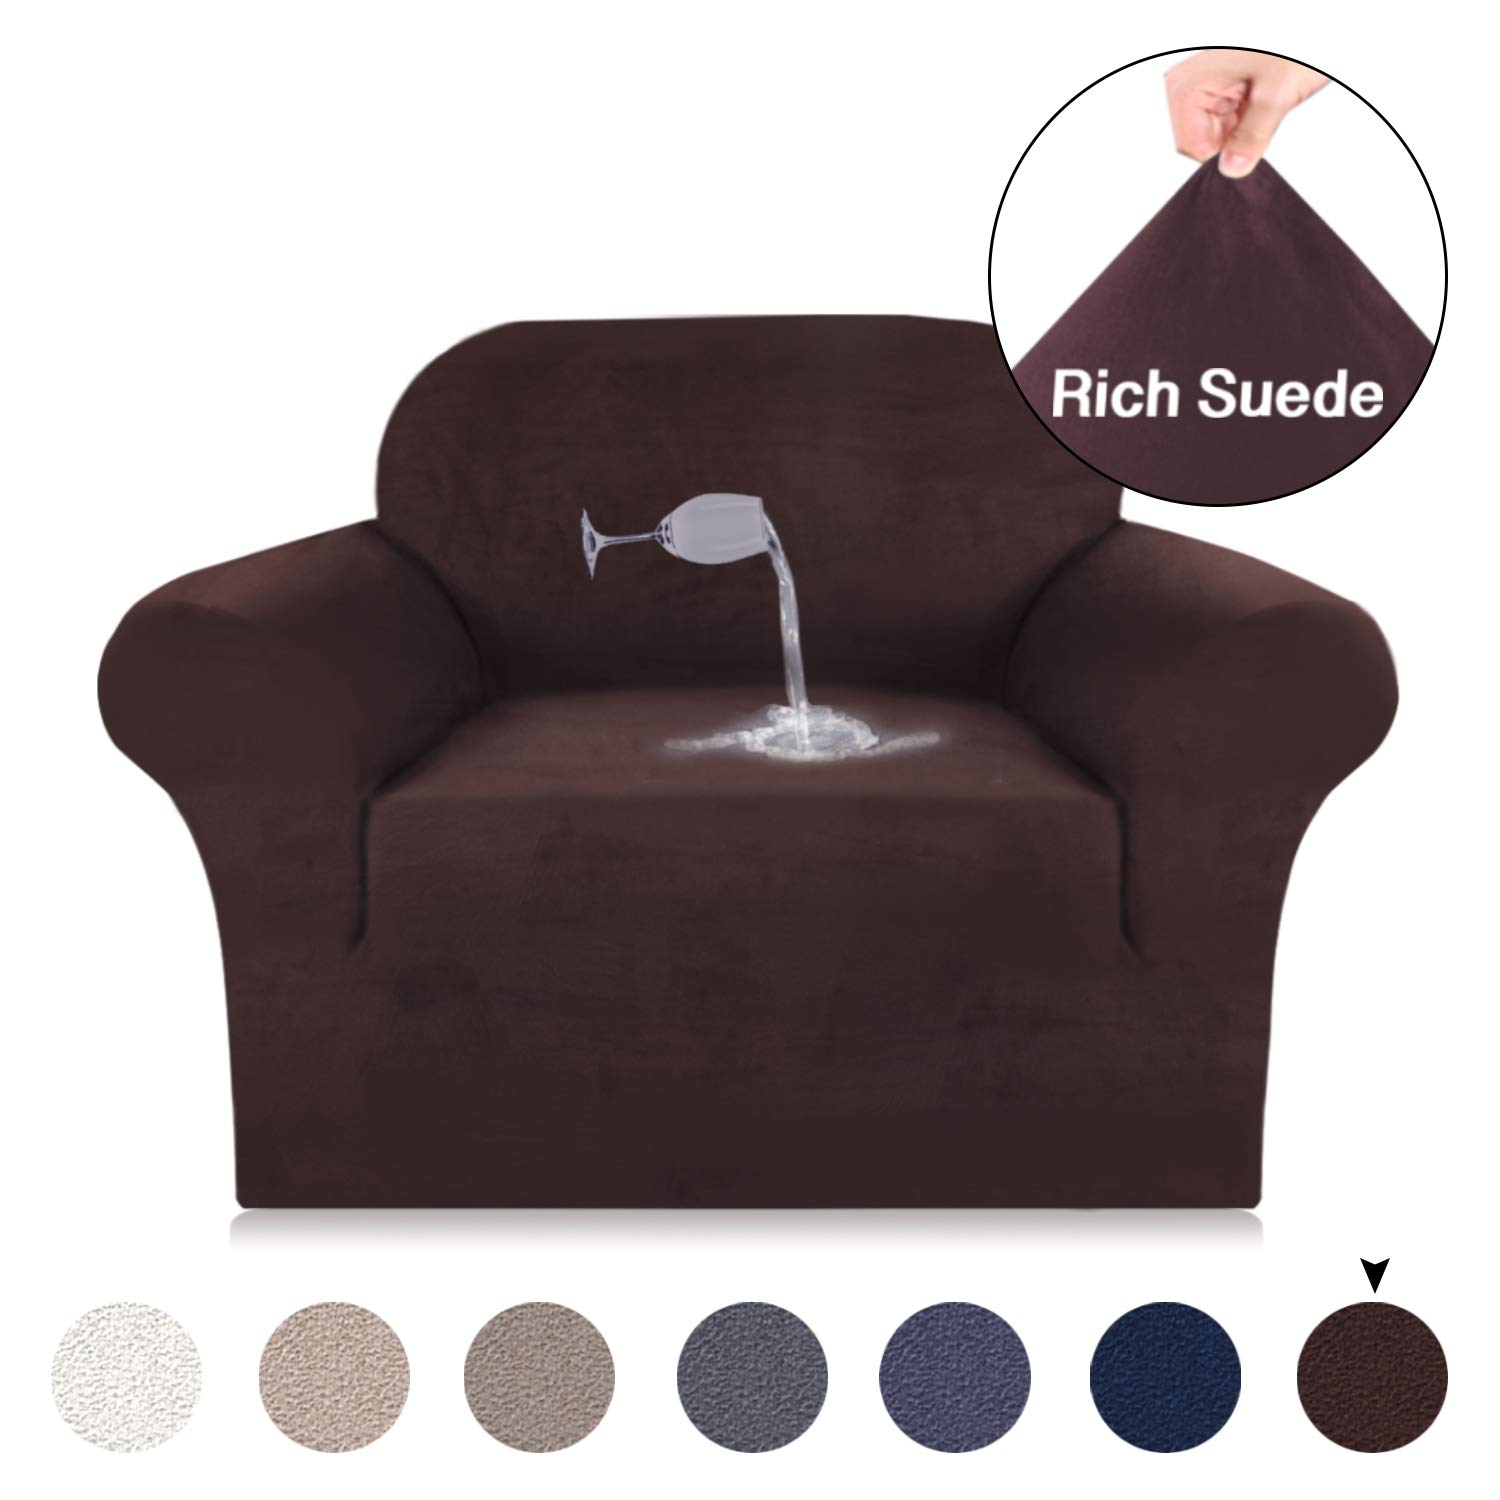 Turquoize Chair Cover Velvet Plush Sofa Slipcover Stretch Sofa Cover for Chair Living Room Slipcover Suede Furniture Cover, Slid Resistant Water Repellent Washable Sofa Protector (Chair, Brown)